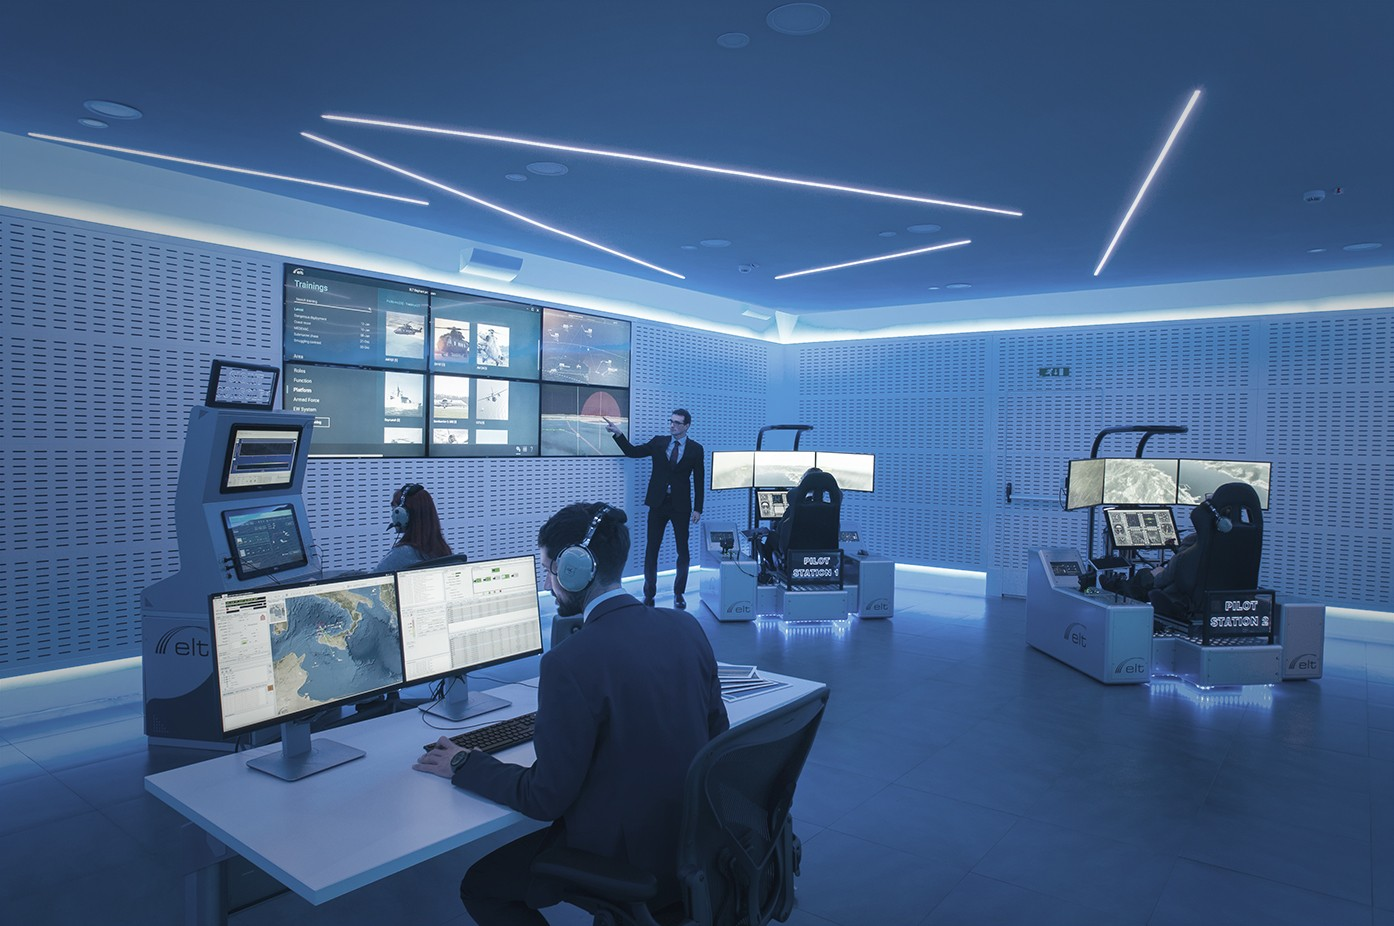 Solutions Successes Vt Mak Atm Simulator Software Engineering Case Study A Leader In The Field Of Electronic Counter Measures Has Teamed With And Antycip Simulation To Develop Warfare Battlelab